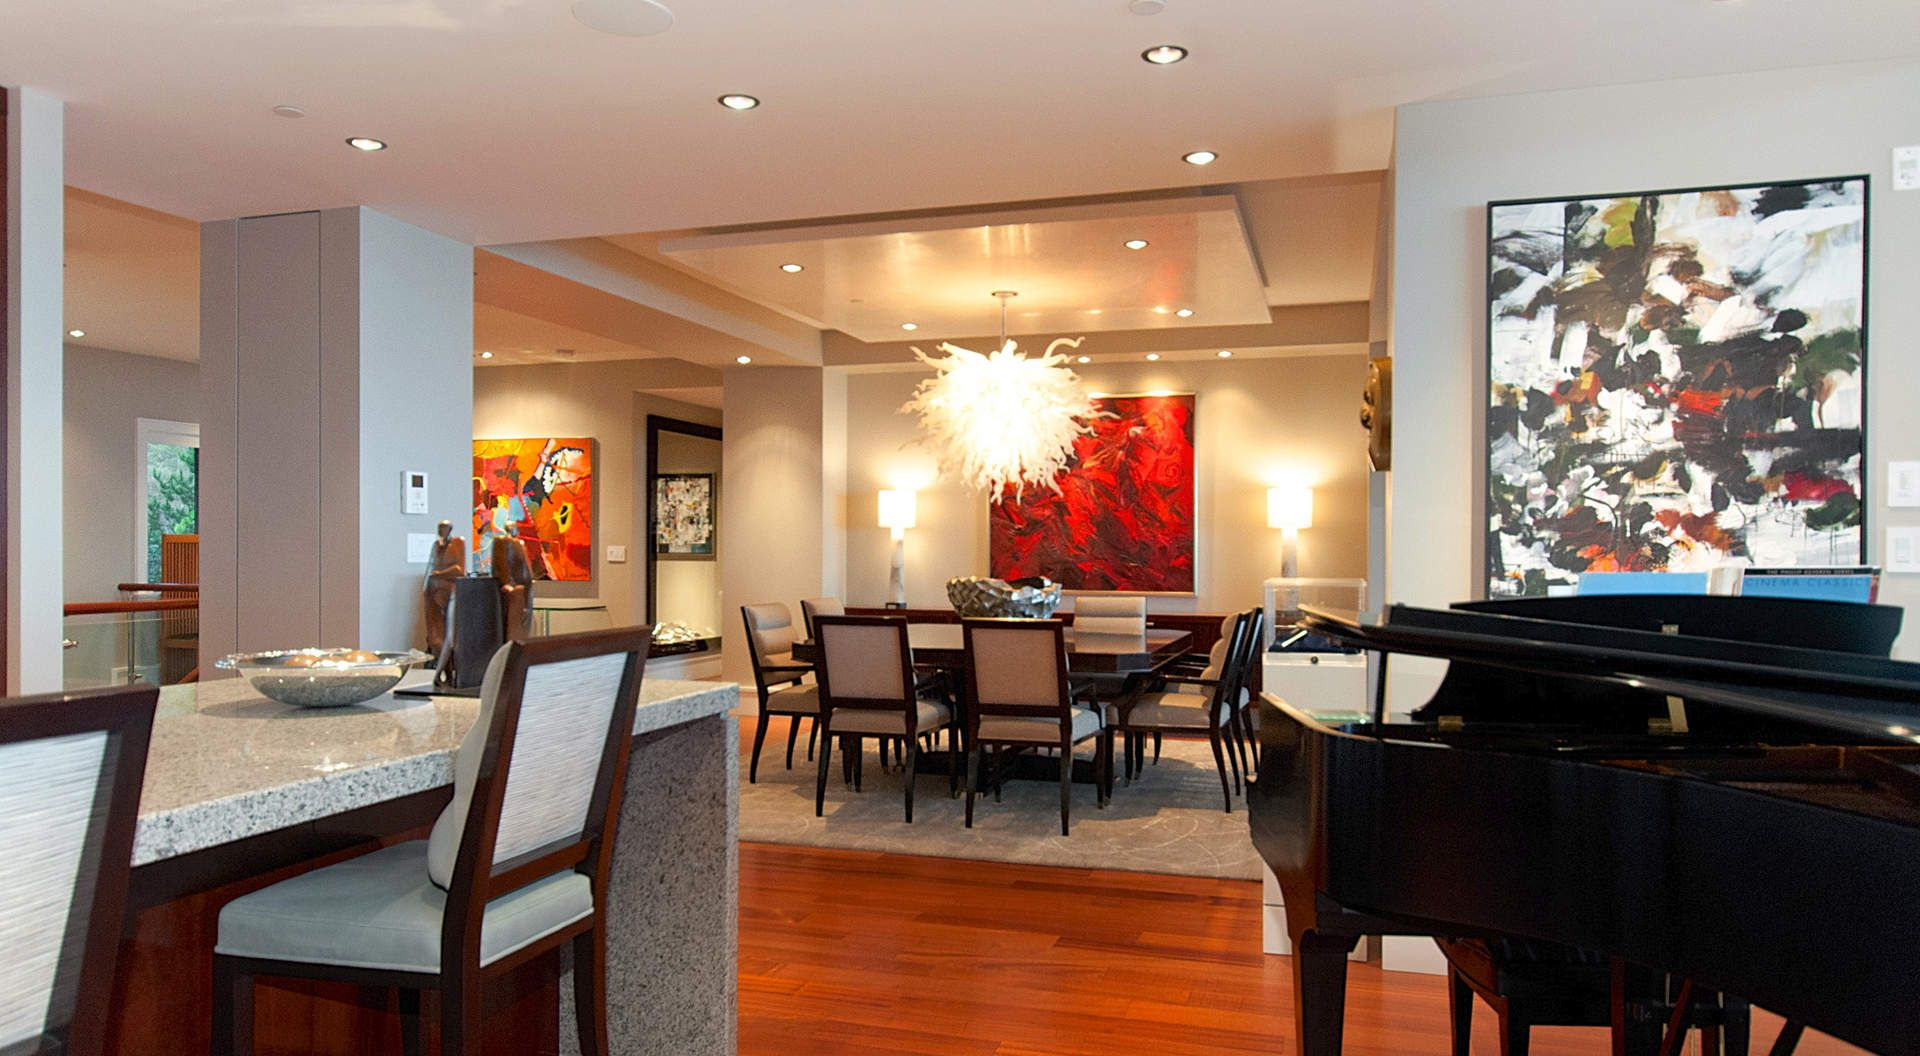 Enchanting Livingdining Room With An Art Collection  Interior Glamorous How To Decorate A Living Room And Dining Room Combination Decorating Design